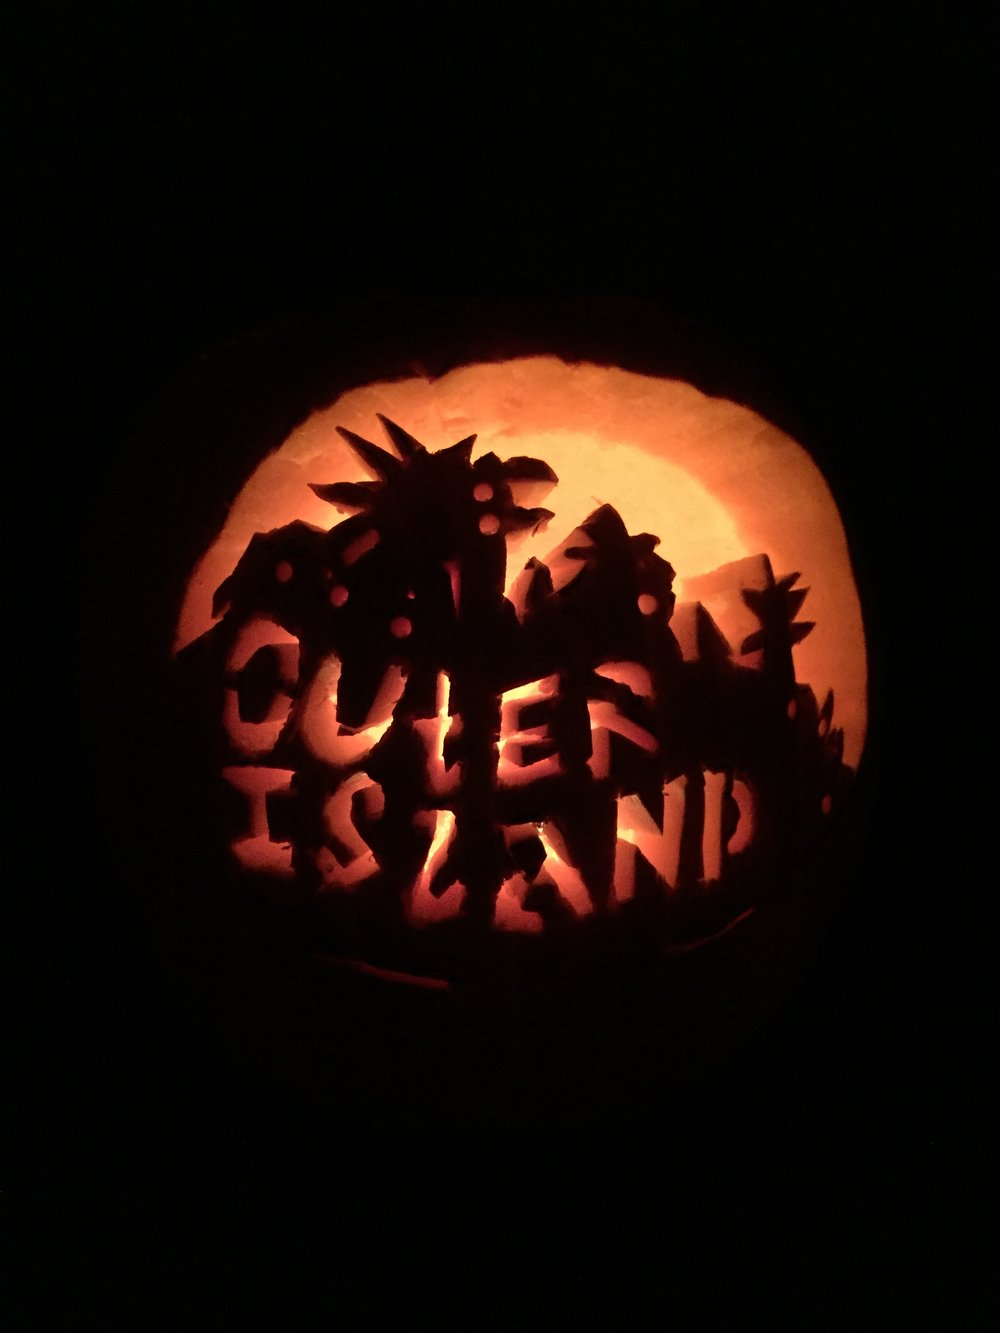 Outer island Pumpkin carving